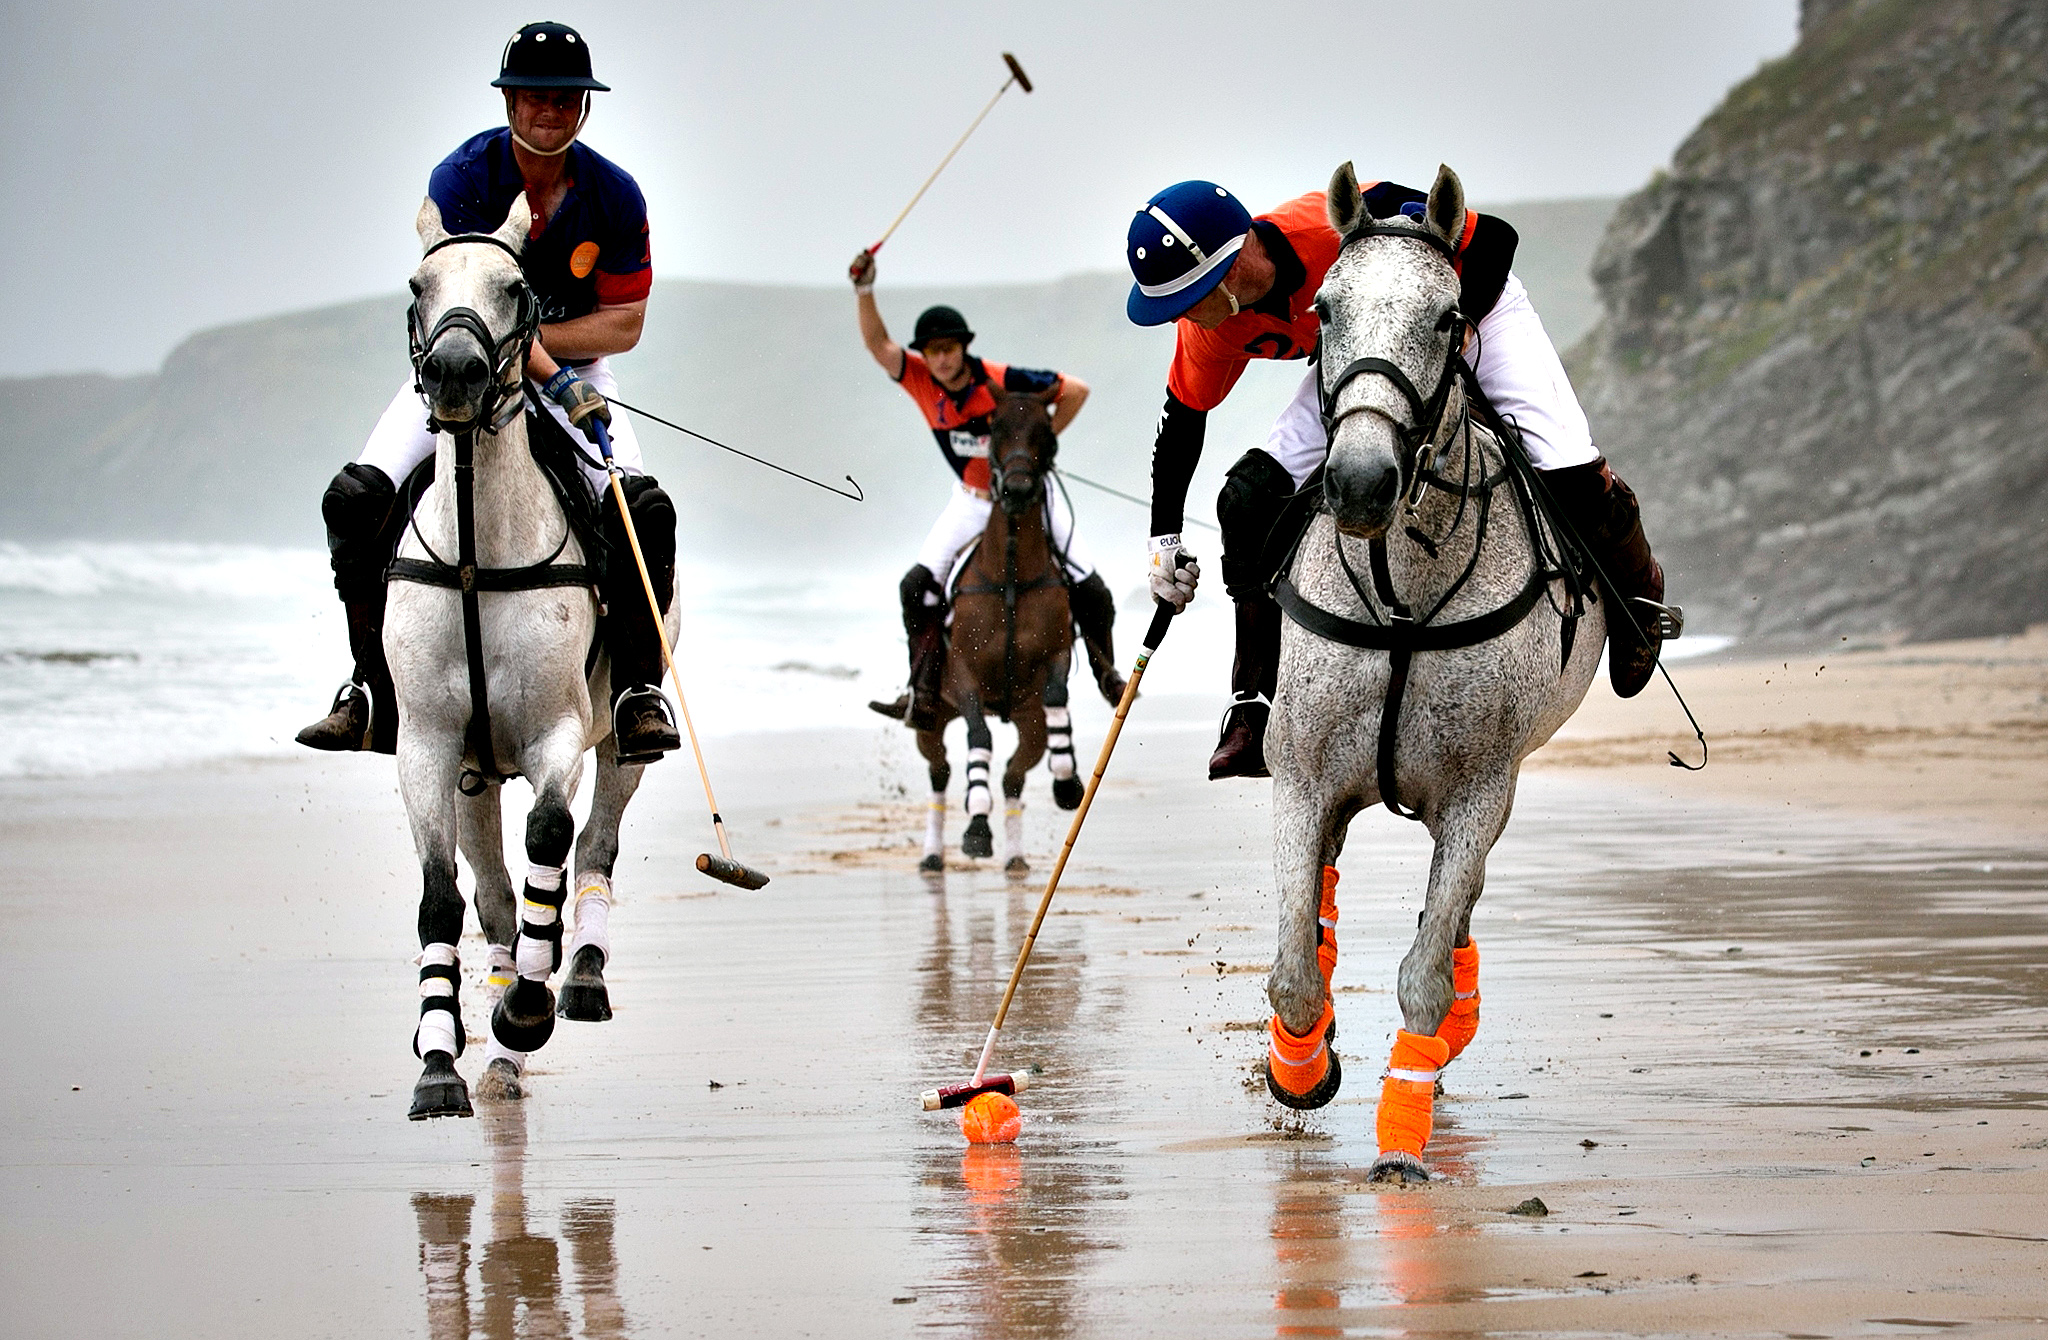 Polo players Andy Burgess (R) riding Tonka Rob Brockett riding Torda (L) and Ben Marshall (C) riding Shriva practice for the beach polo competition being held on the beach at Watergate Bay, near Newquay this weekend on July 4, 2014 in Cornwall, England. The players were practicing ahead of this weekend's 8th annual Veuve Clicquot Polo on the Beach at Watergate Bay, north Cornwall, which is taking place tomorrow and Sunday which attracts thousands of spectators to the beach and features some of England's top international players competing in a series of matches.